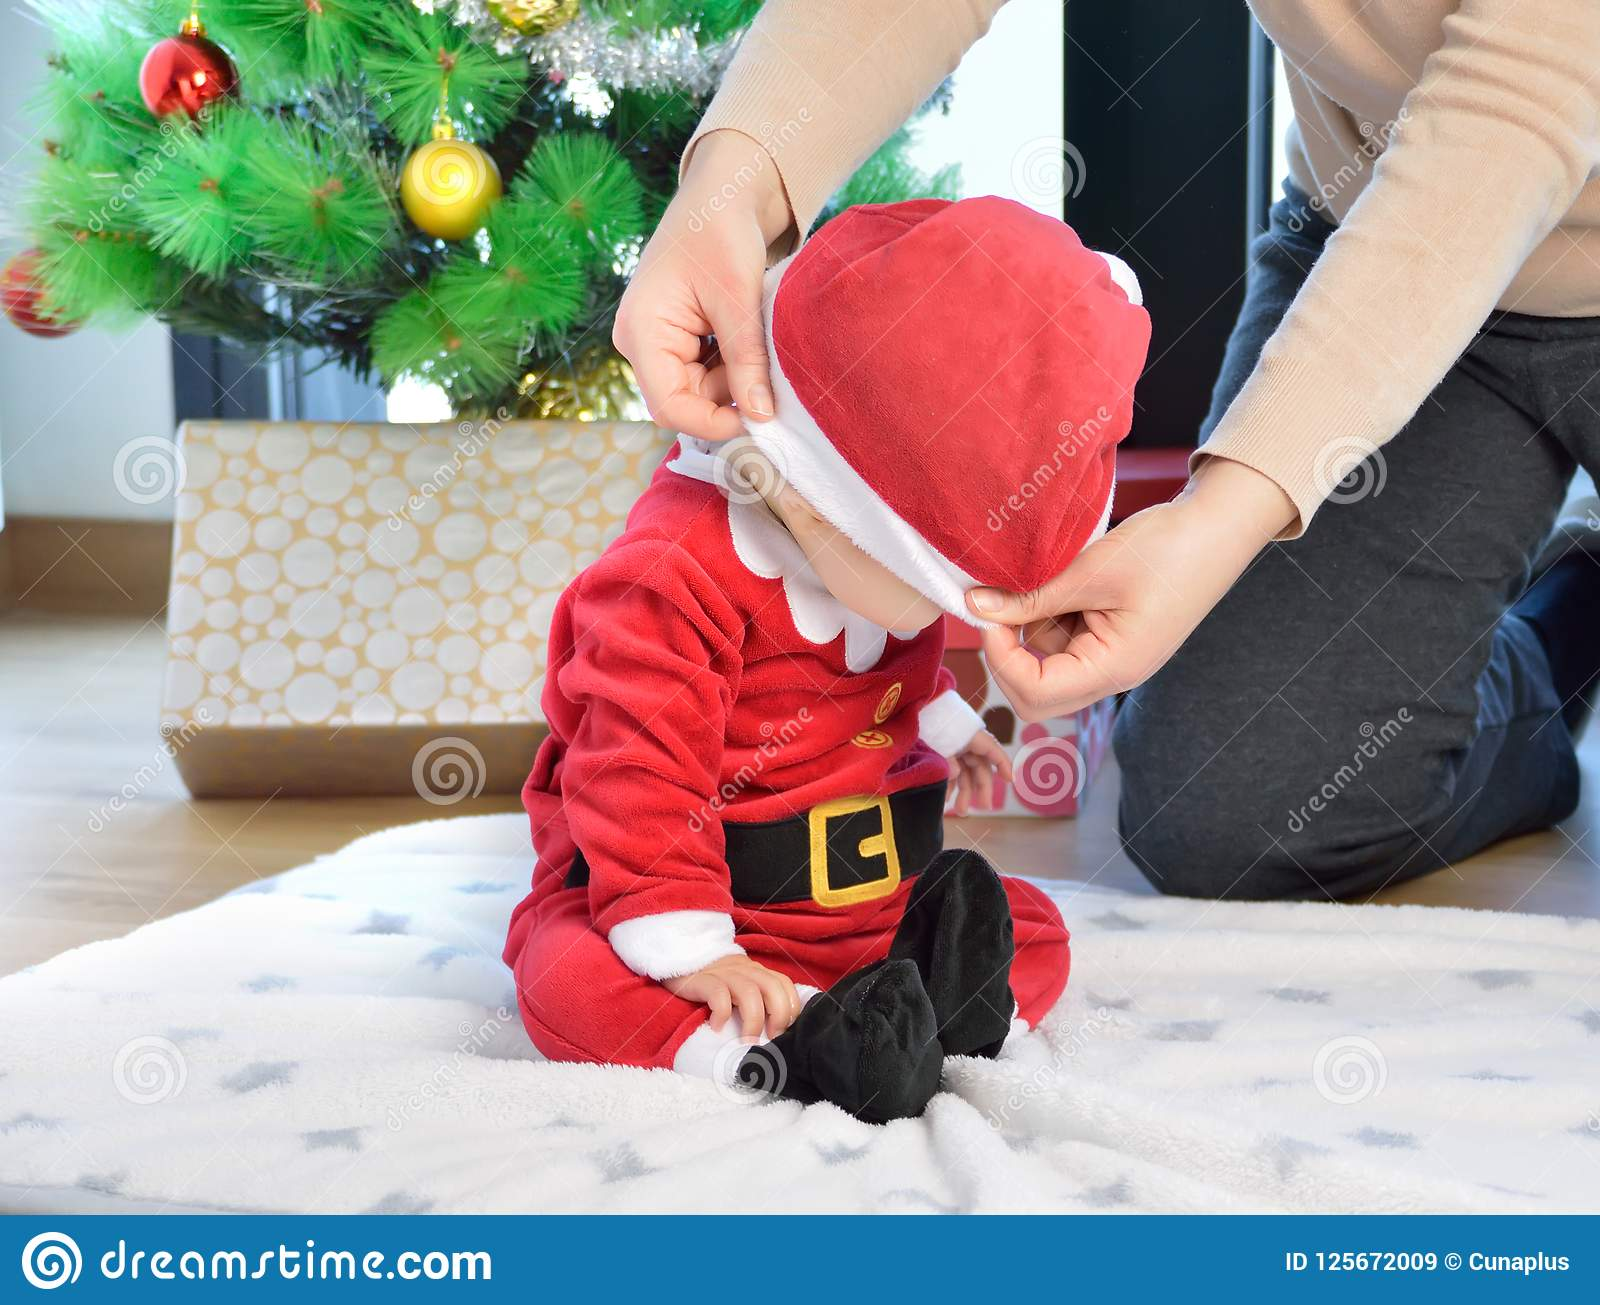 A Christmas To Remember.A Christmas To Remember Stock Image Image Of Male Indoor